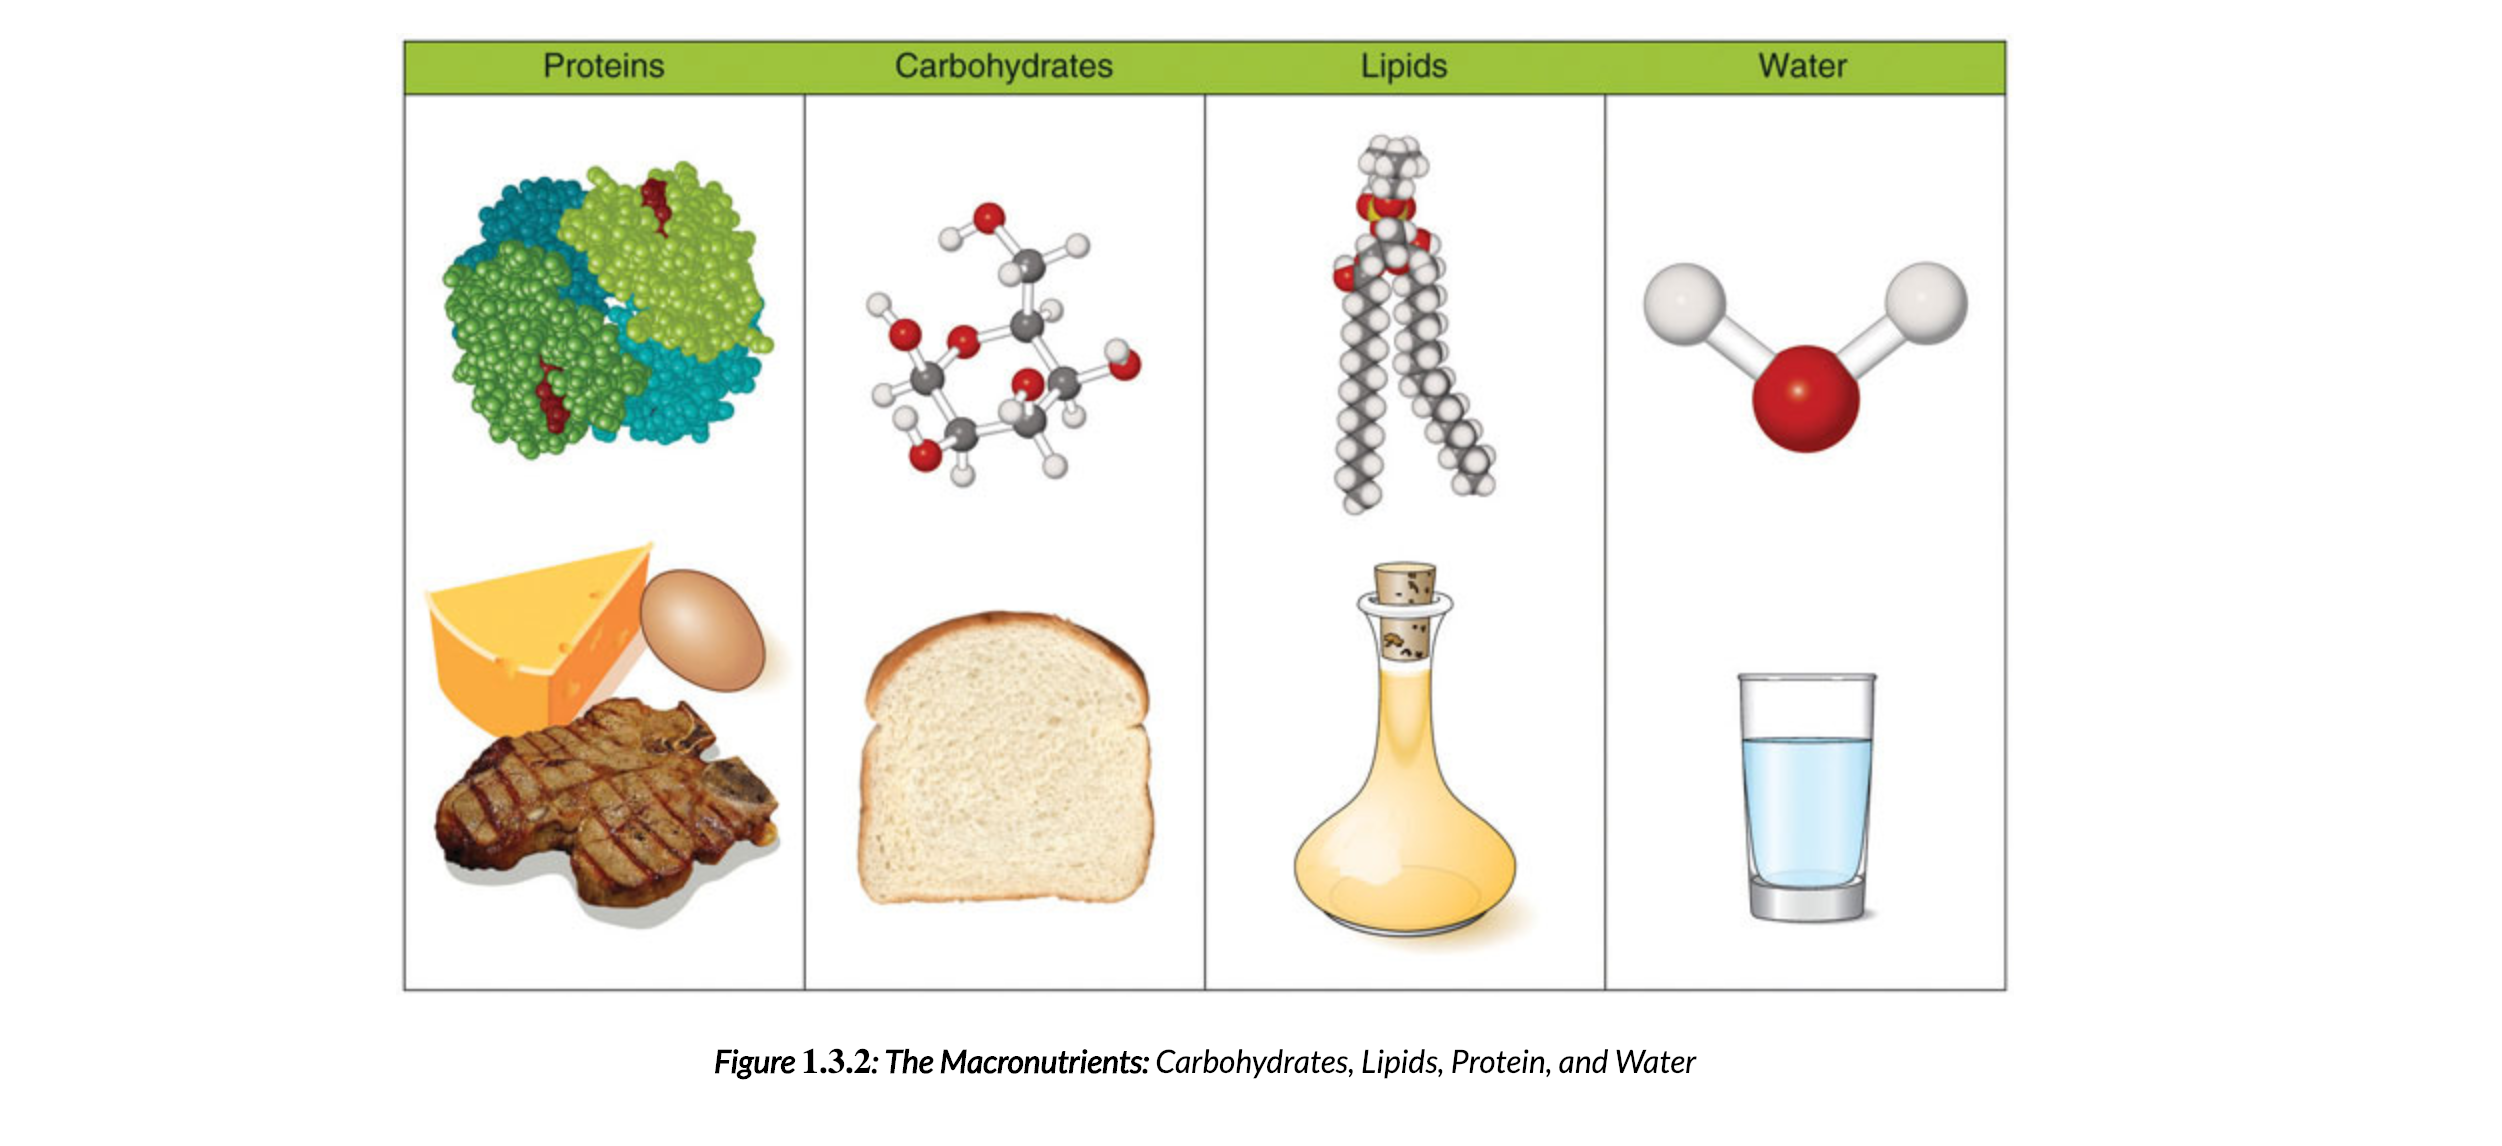 An image of a table containing Proteins, Carbohydrates, Lipids, and water displayed at the molecular level; with examples of a source for that nutrient below the molecule. Steak is the protein example, bread is the carbohydrate example, a flask with a yellow liquid is the lipid example, and a glass of water is the water example. The carbon structure of 1 molecule for the nutrient is shown above the example.